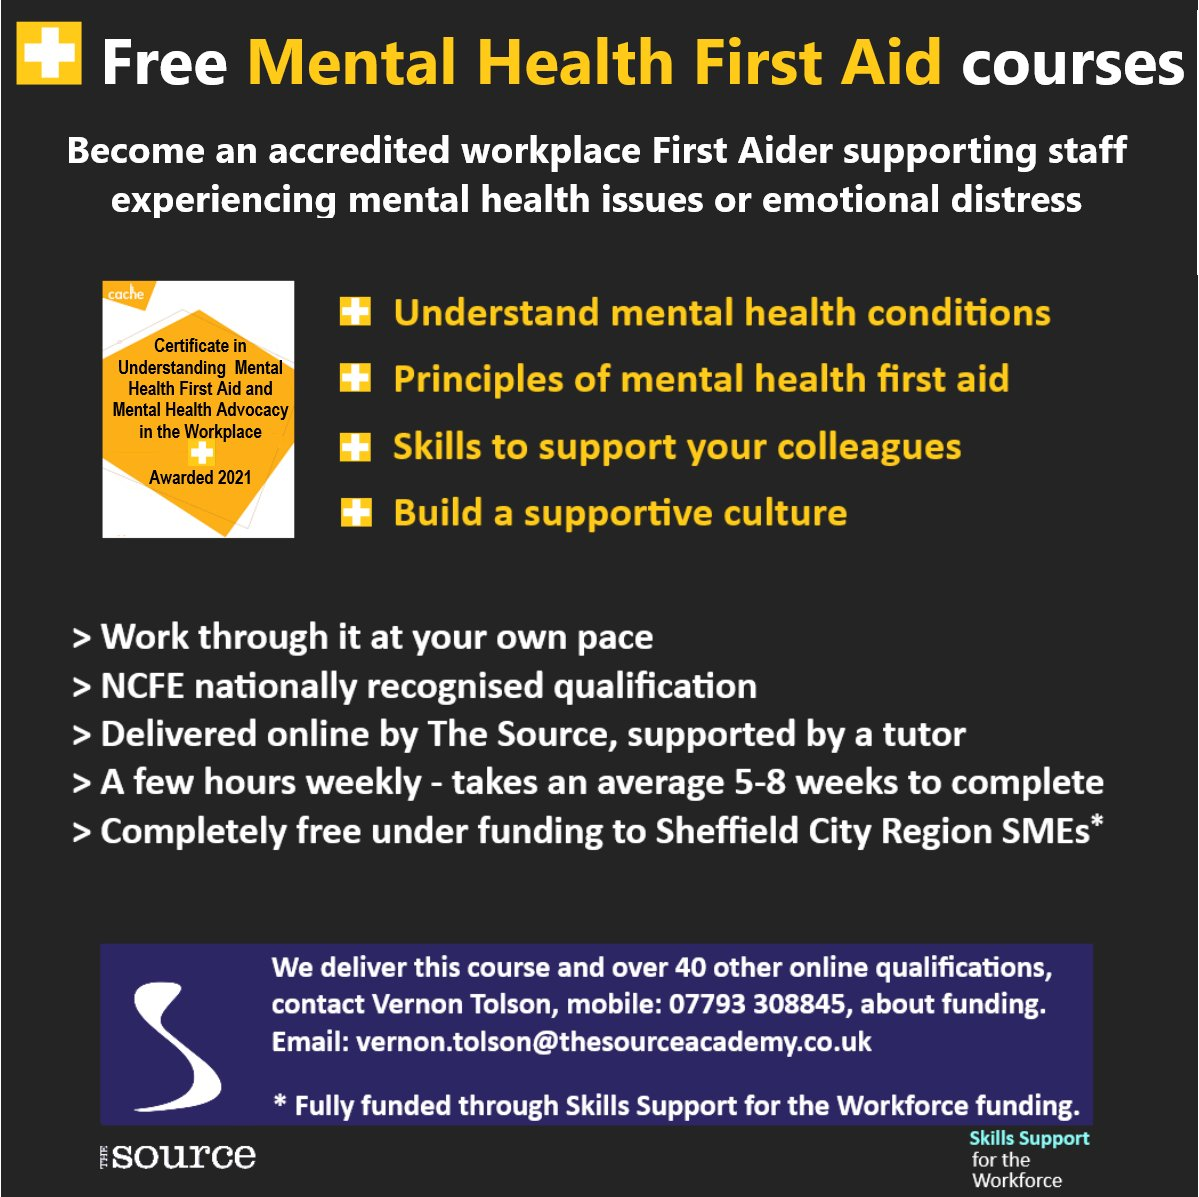 Free Mental Health First Aid courses delivered online by The Source.  Free to employees at Sheffield City Region SMEs and free to residents in Sheffield City Region looking for work.  Become an accredited Mental Health First Aider supporting staff experiencing mental health issues or emotional distress